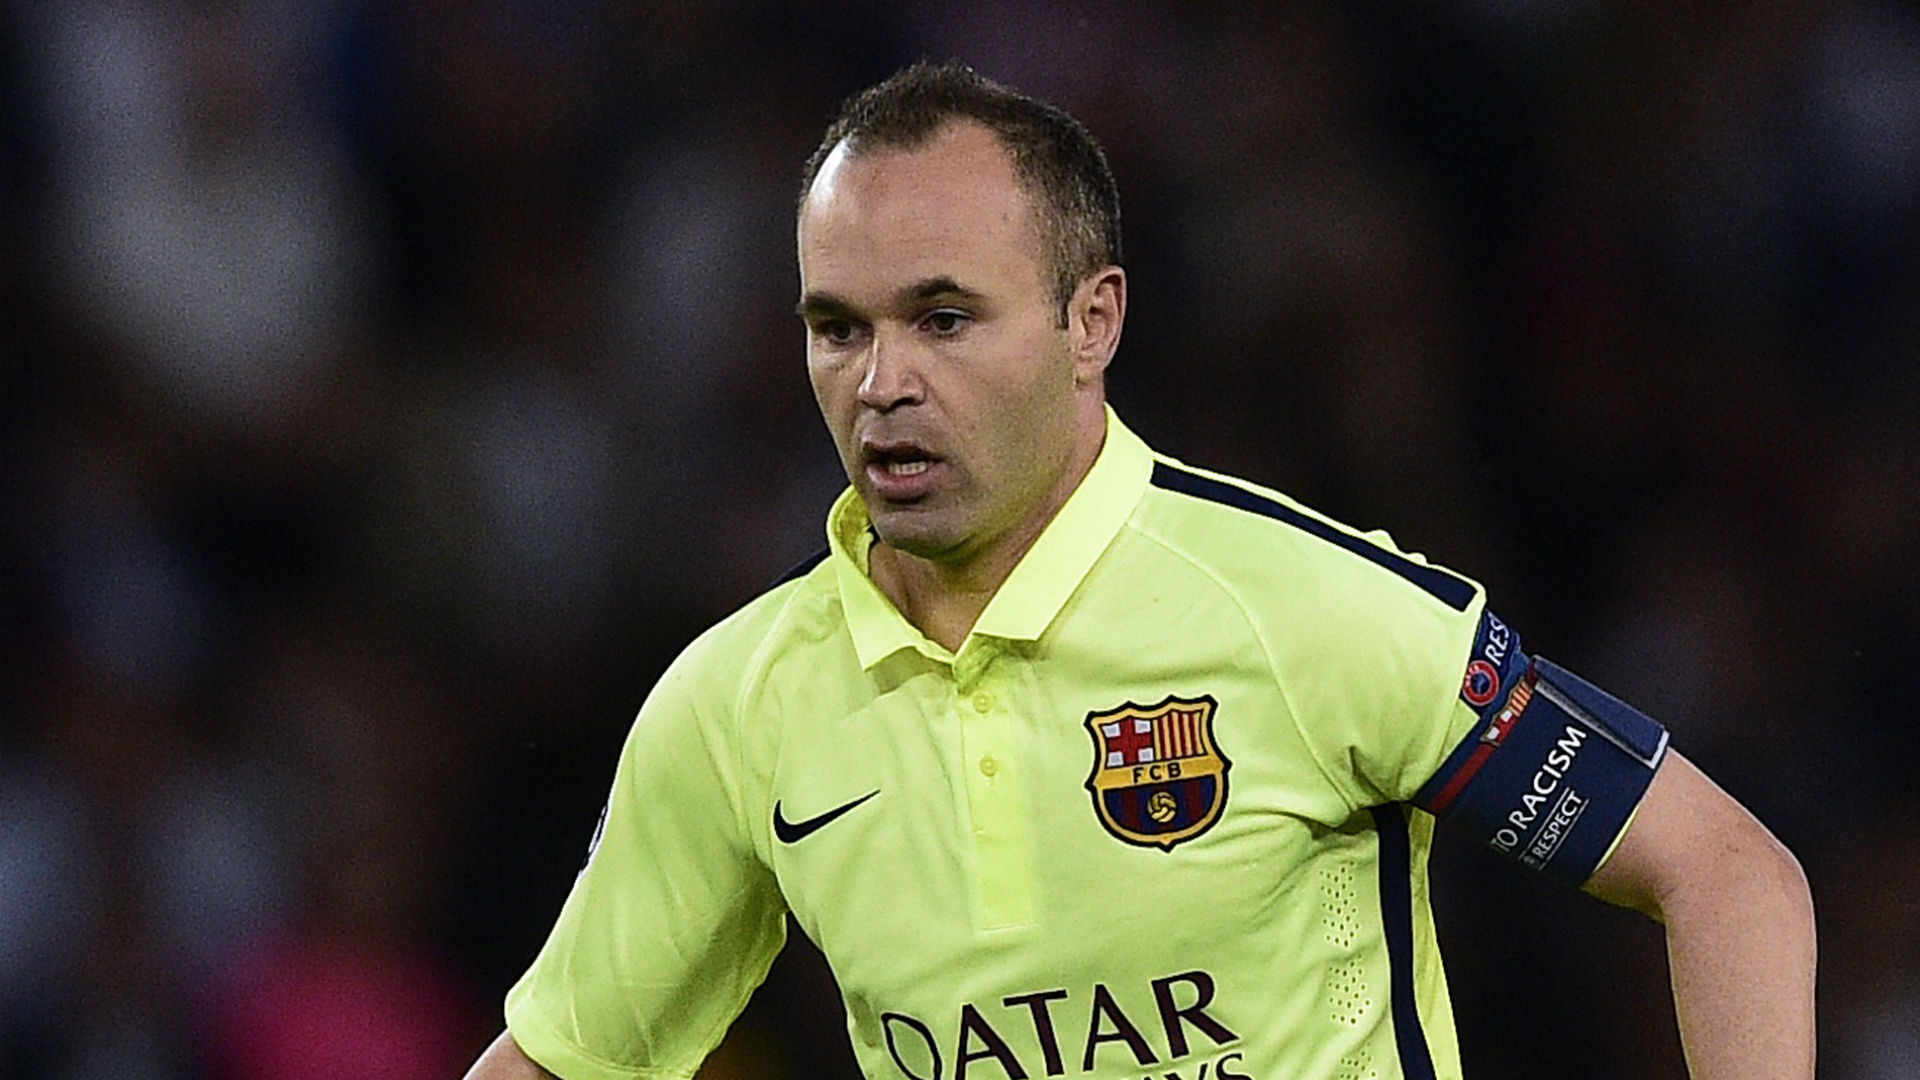 Barcelona are one step from winning everything - Iniesta